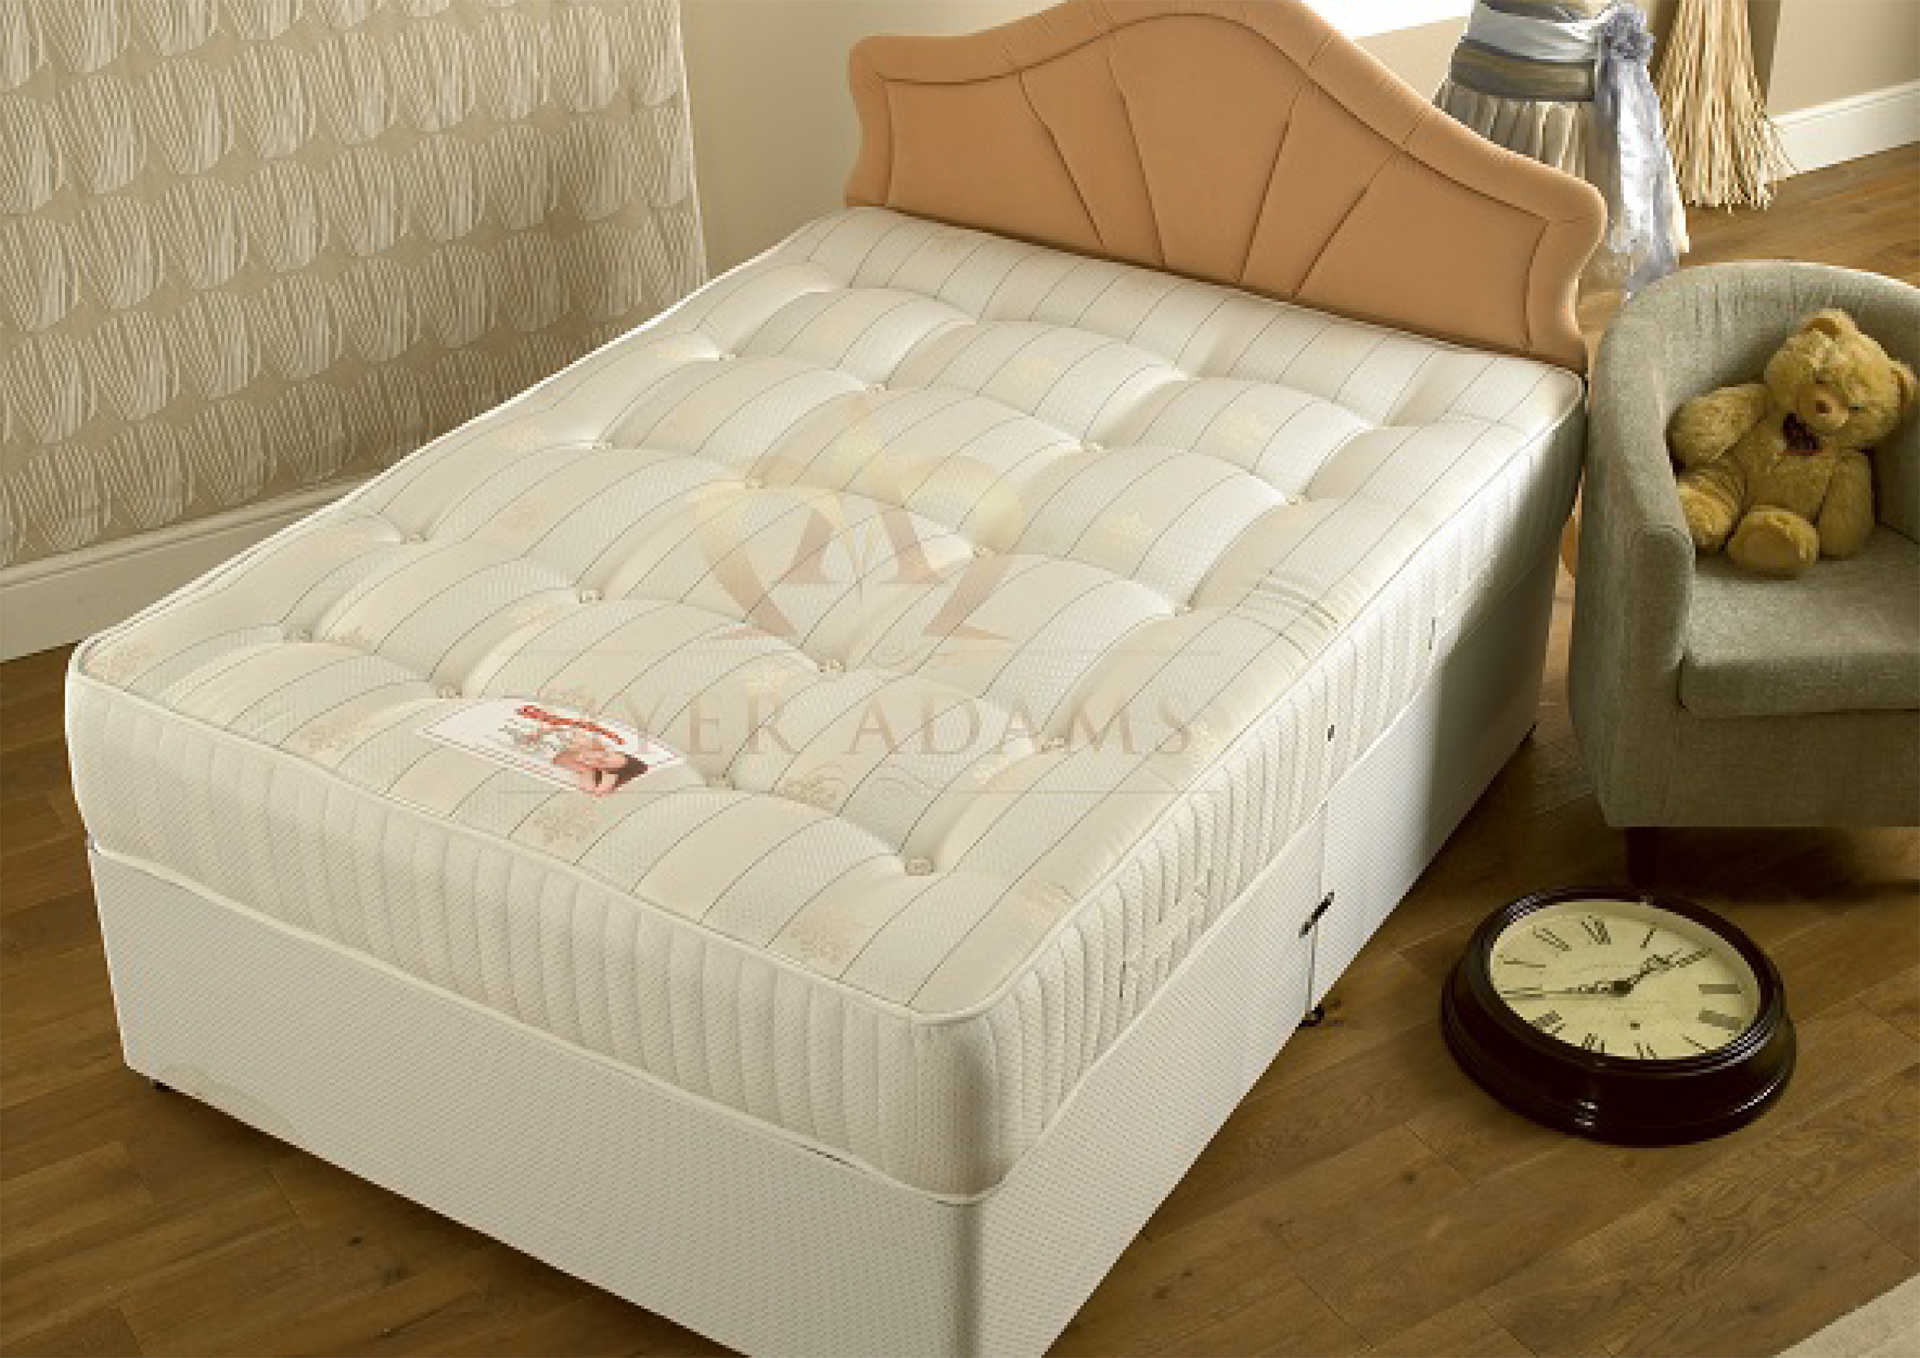 Myer Adams Highlander Orthopaedic Divan Bed From £189